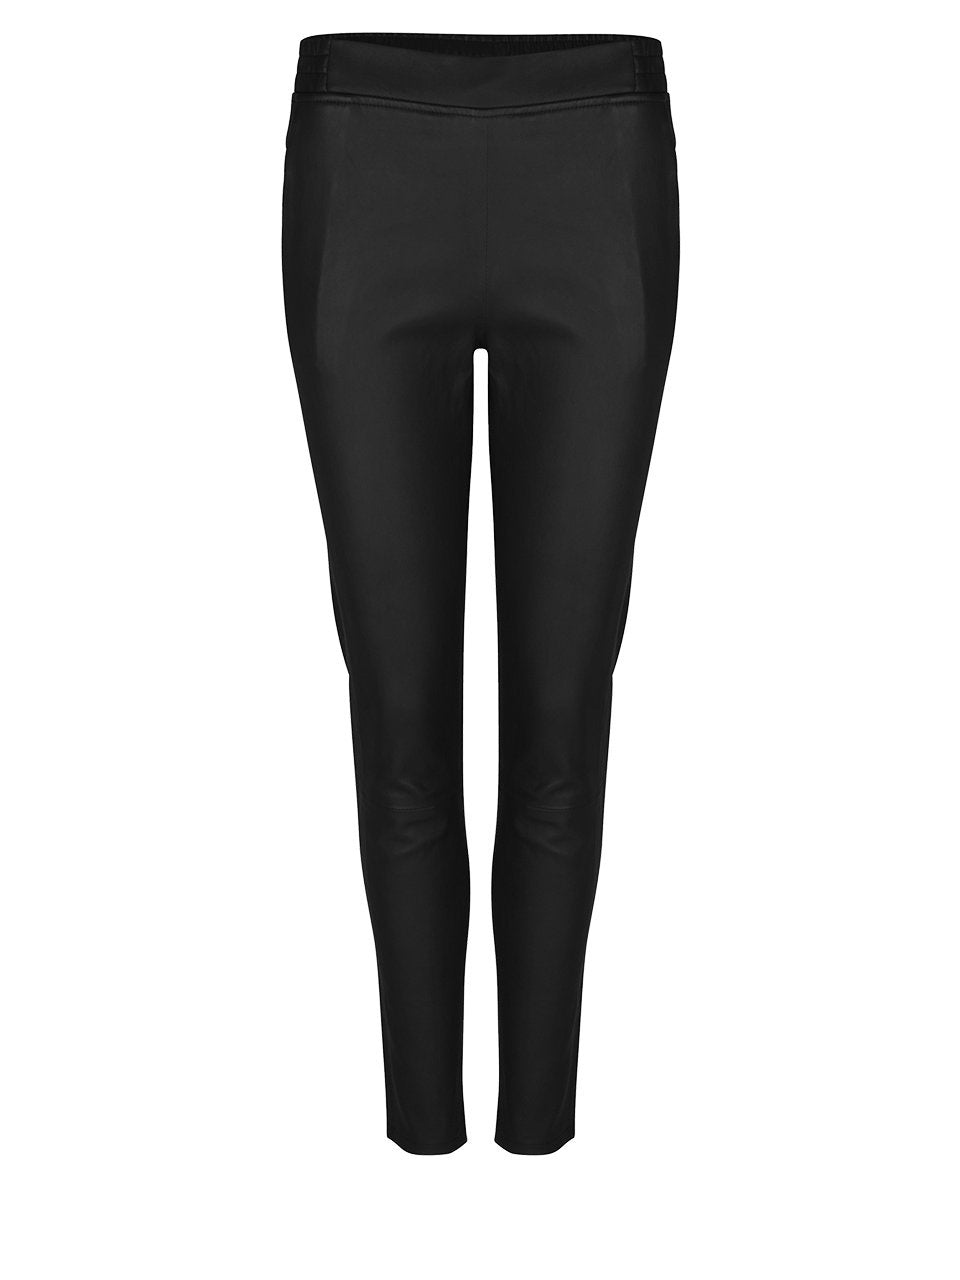 Dante6 Lebon Stretch Leather Pants Black